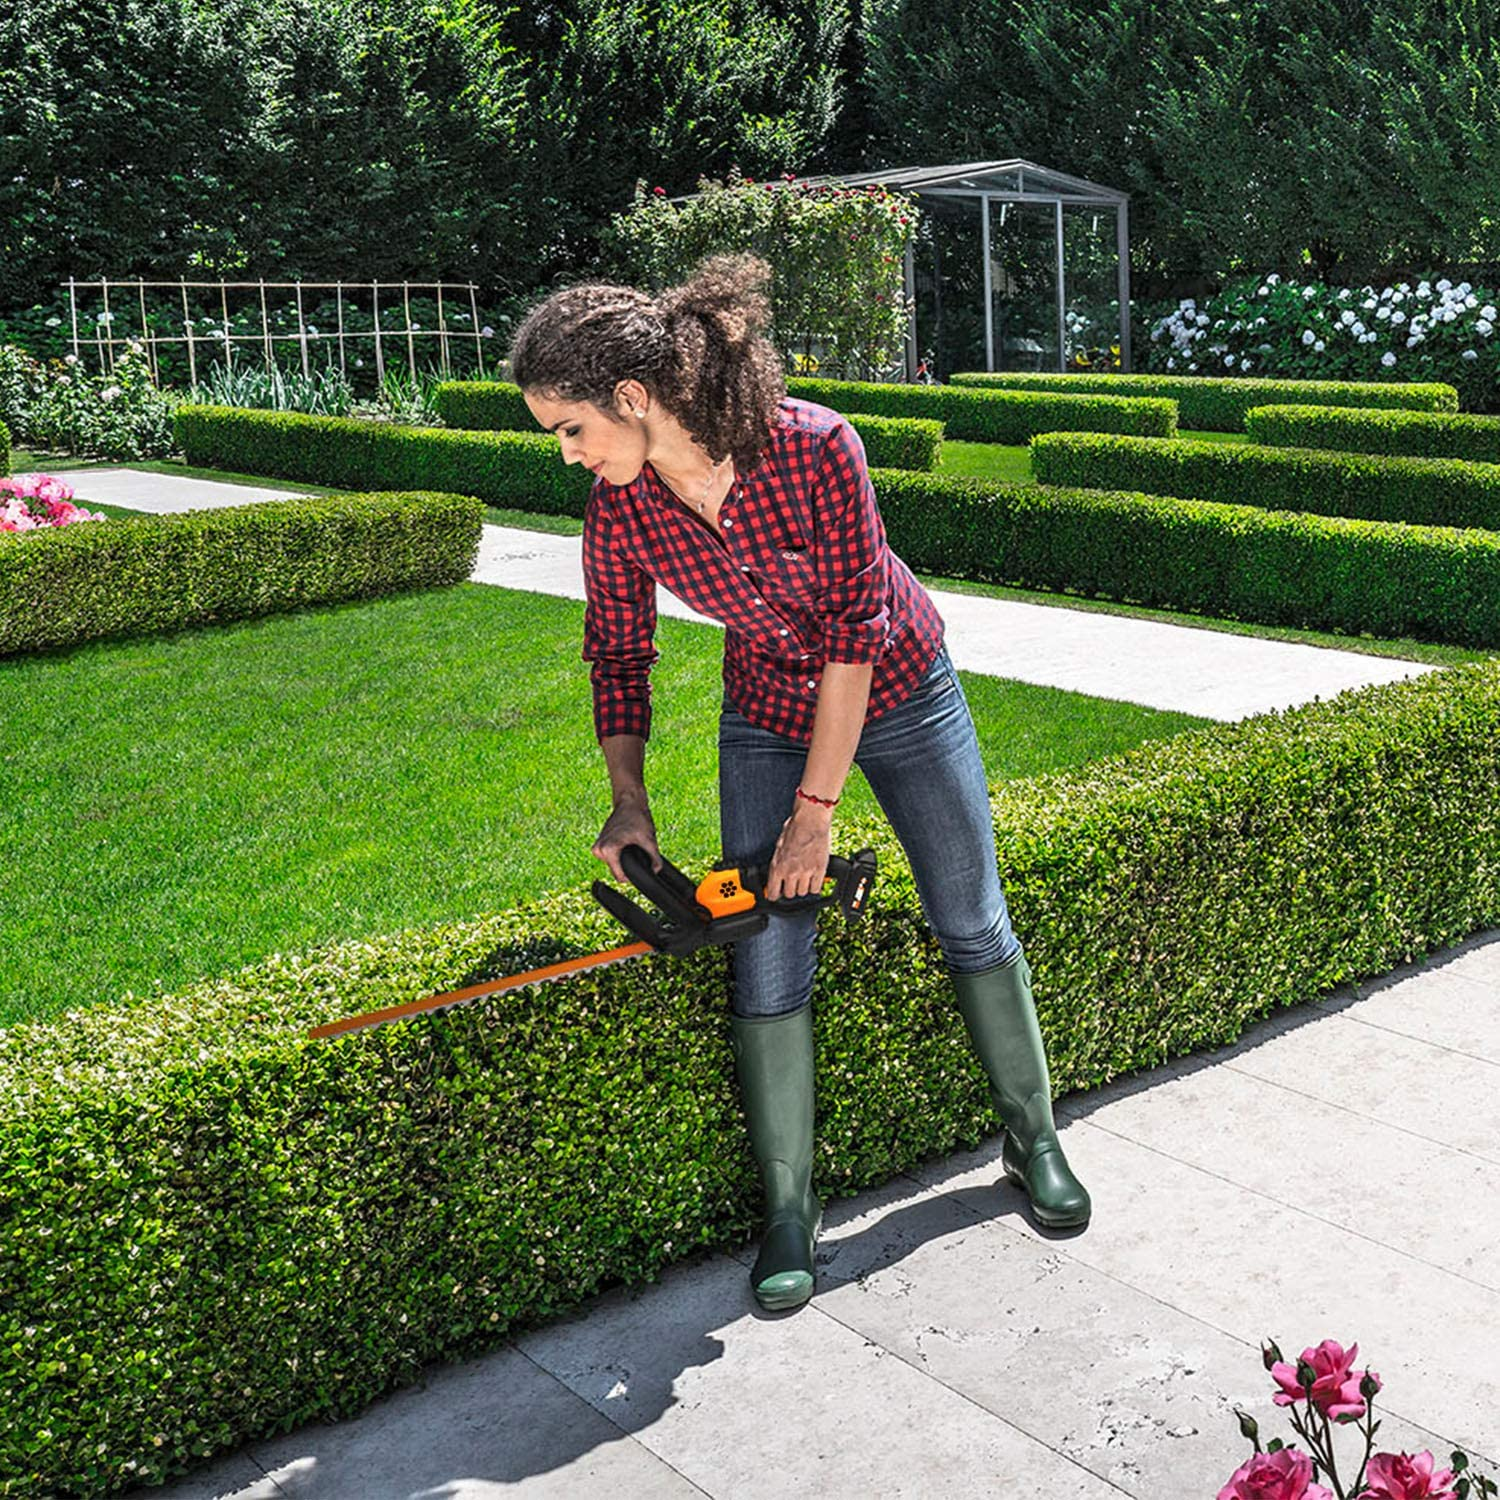 WORX WG261 20V Power Share 22-Inch Cordless Hedge Trimmer